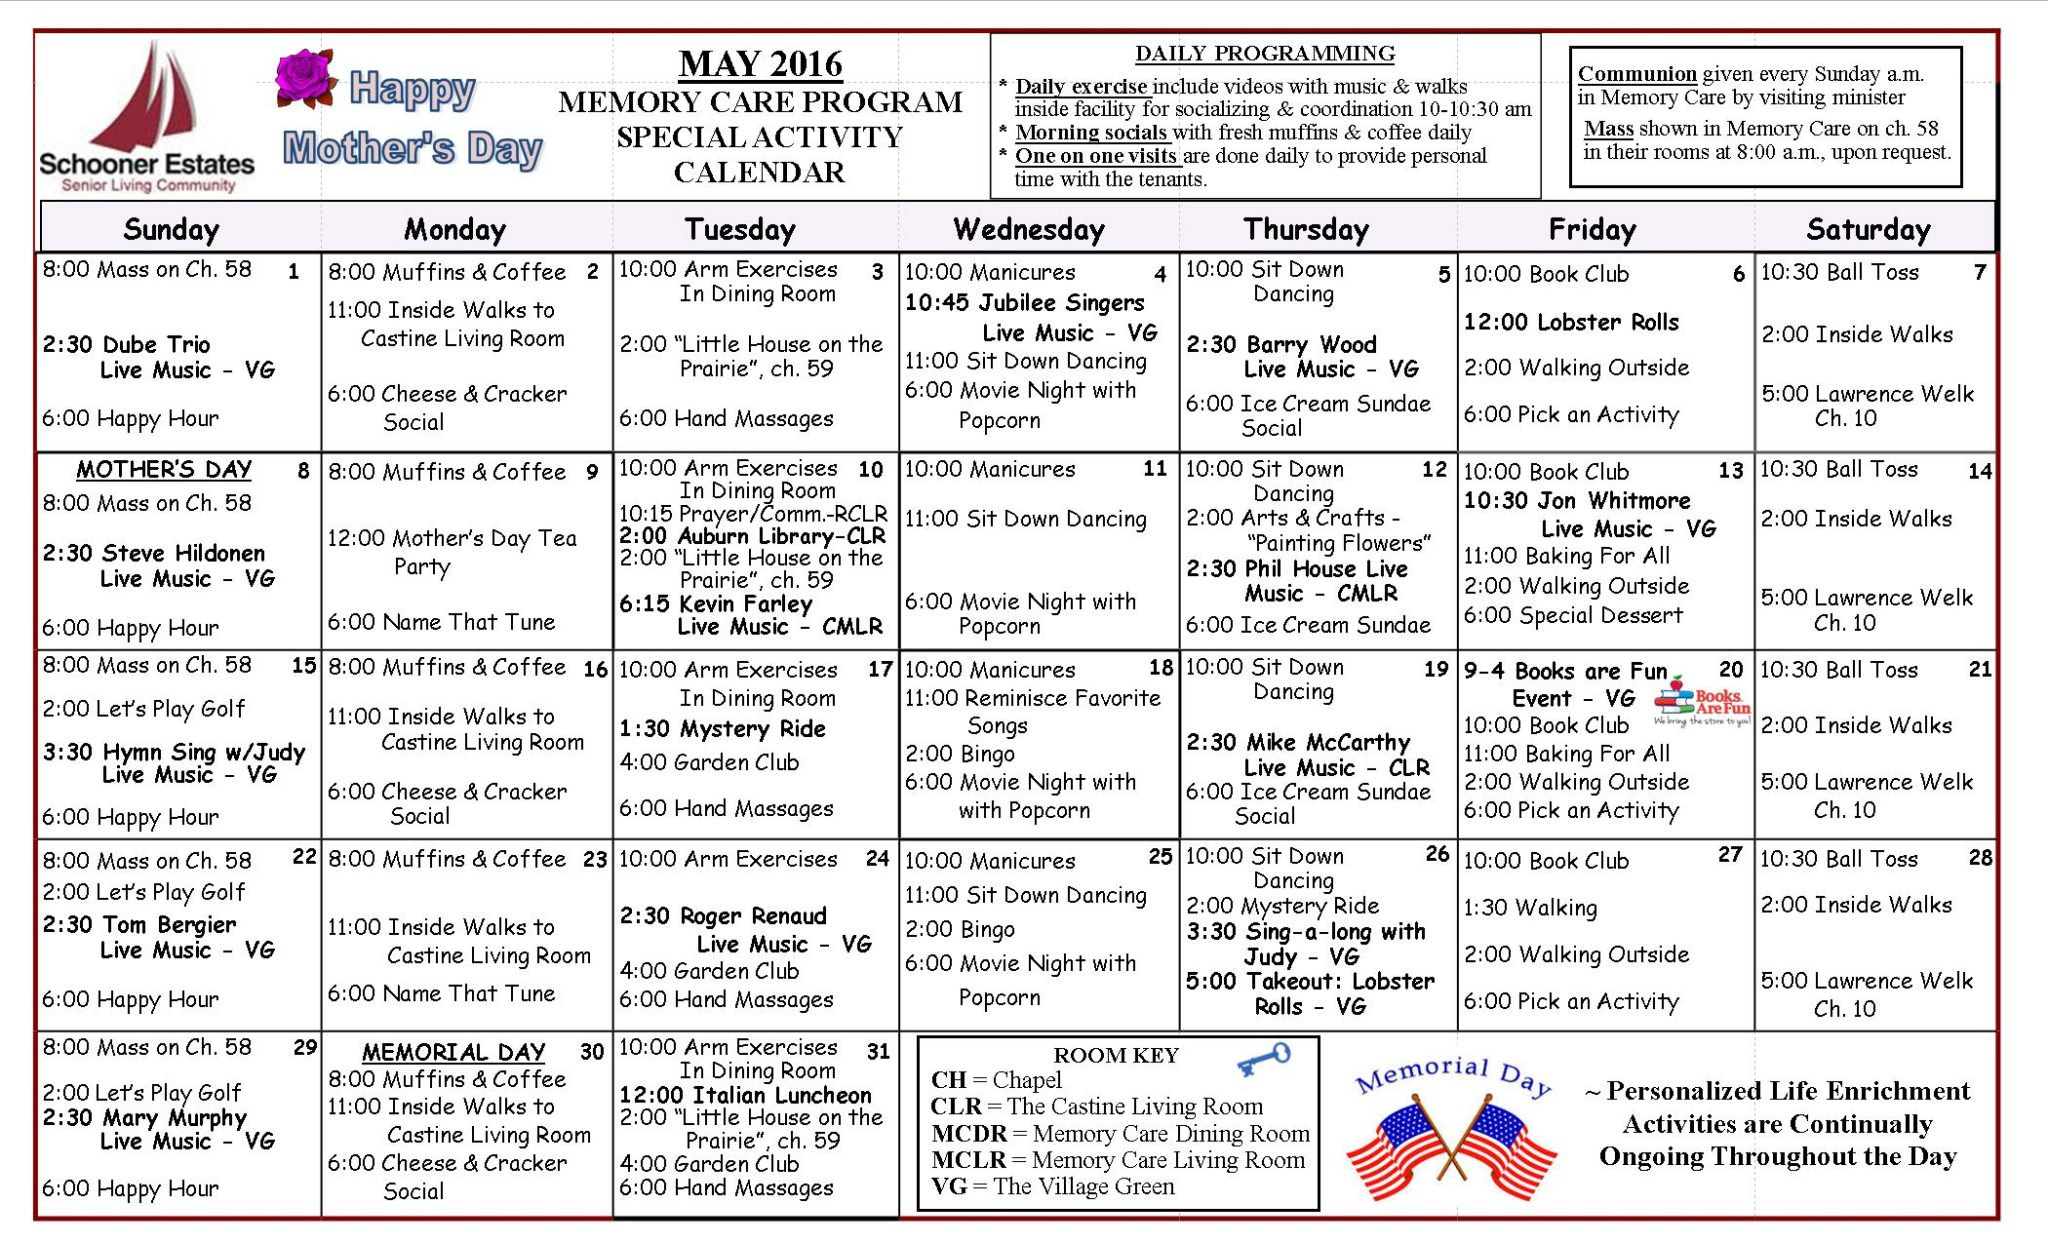 May 2016 Memory Care Activity Calendar